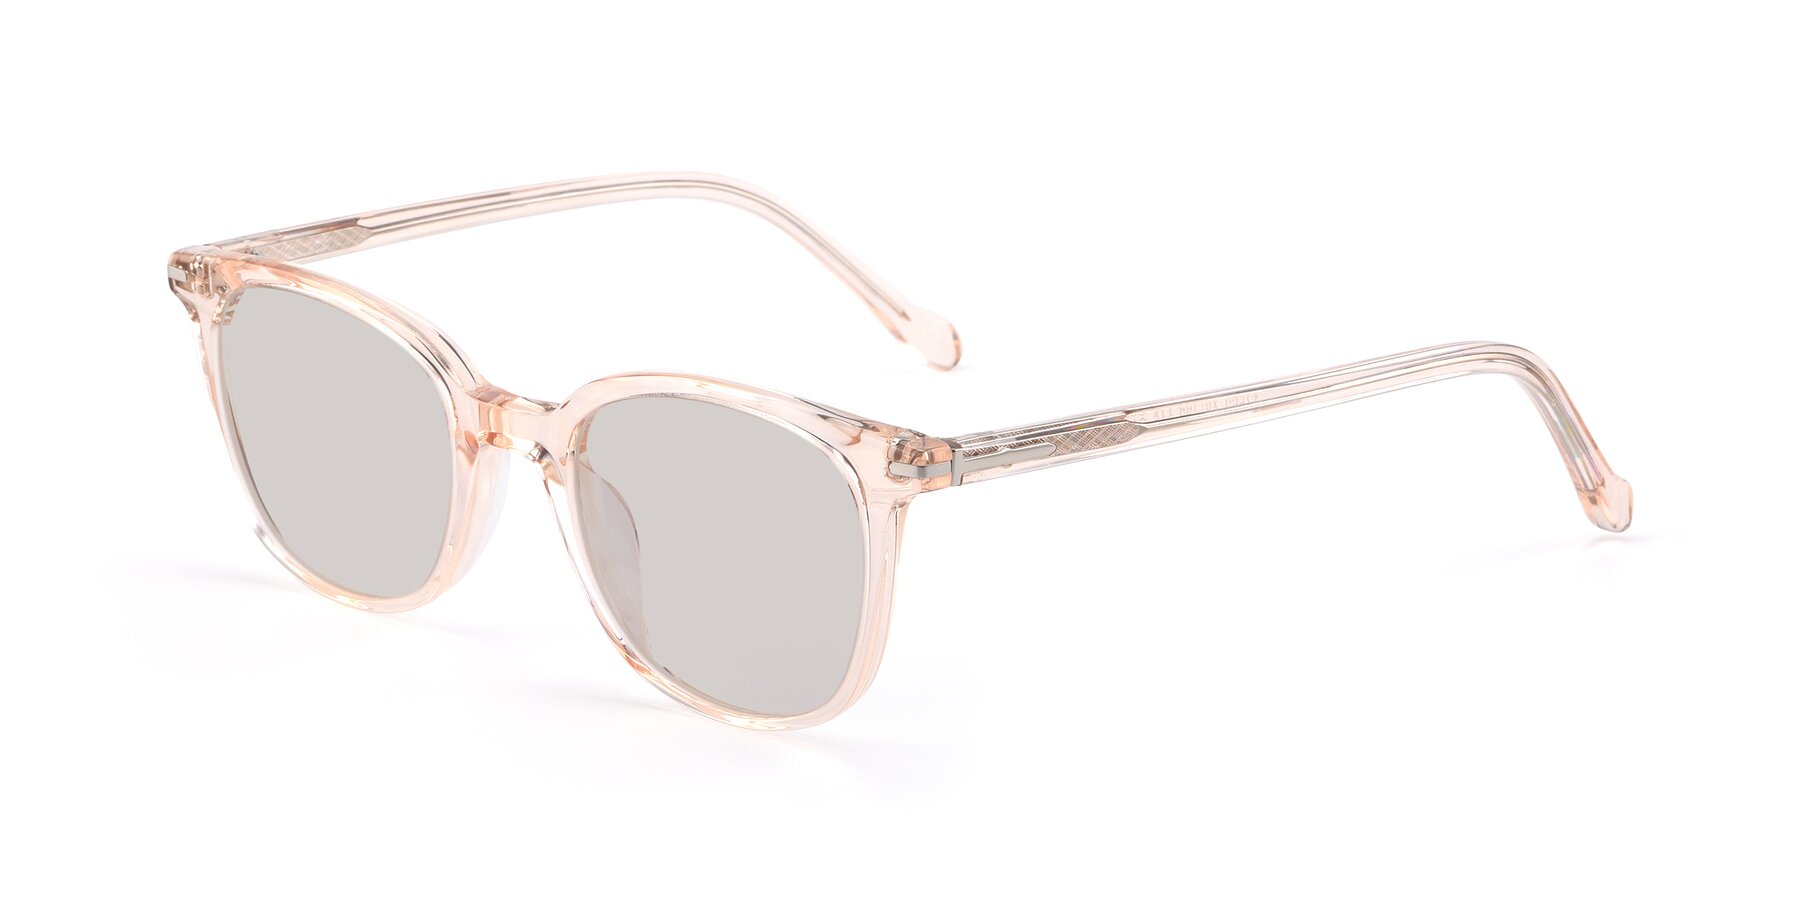 Angle of 17562 in Transparent Pink with Light Brown Tinted Lenses